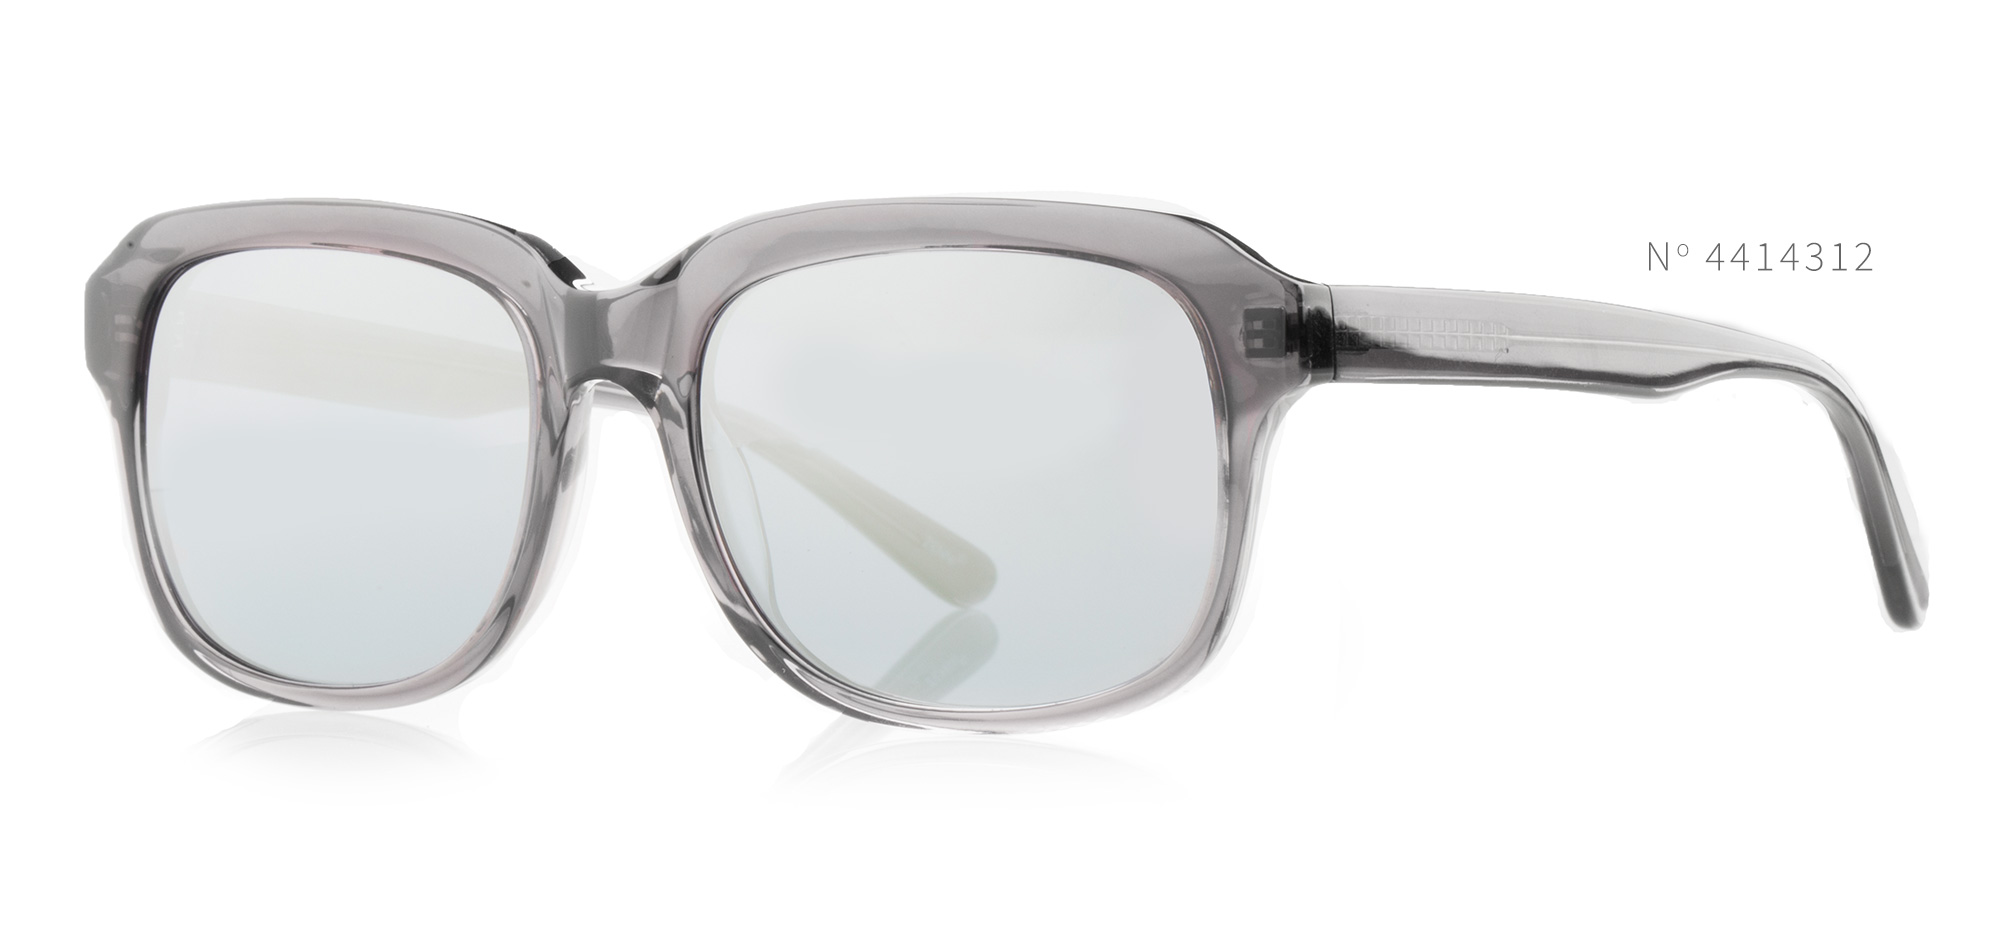 Grey Square Sunglasses